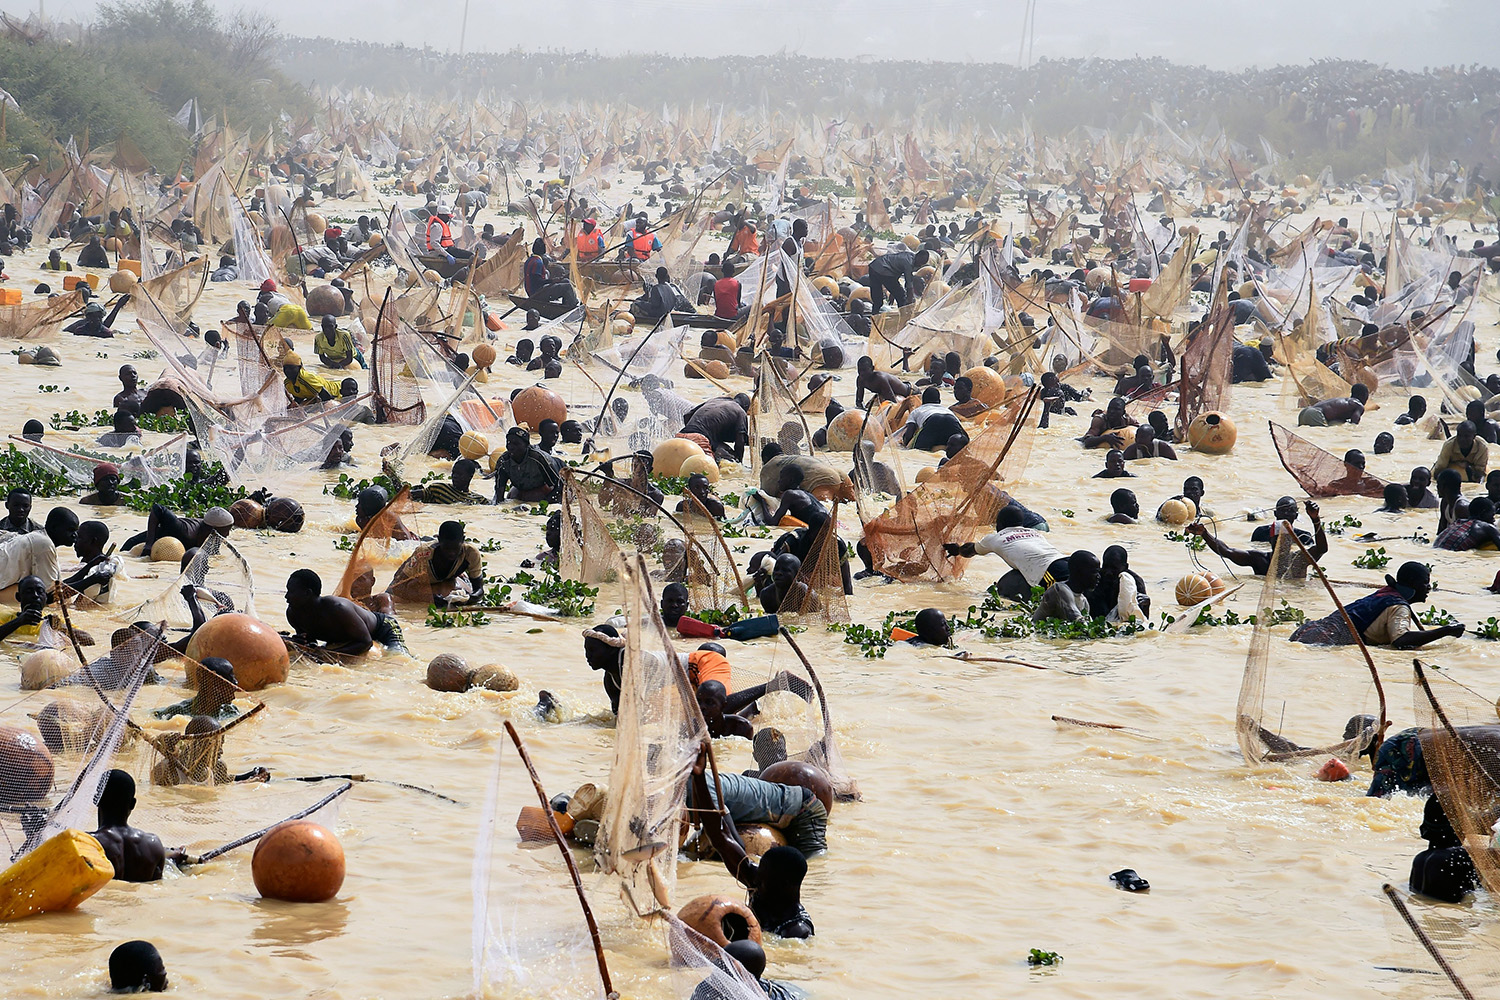 Nigerians try to catch fish during the final day of the Argungu Fishing Festival in Kebbi state, northwest Nigeria, on March 14. PIUS UTOMI EKPEI/AFP via Getty Images